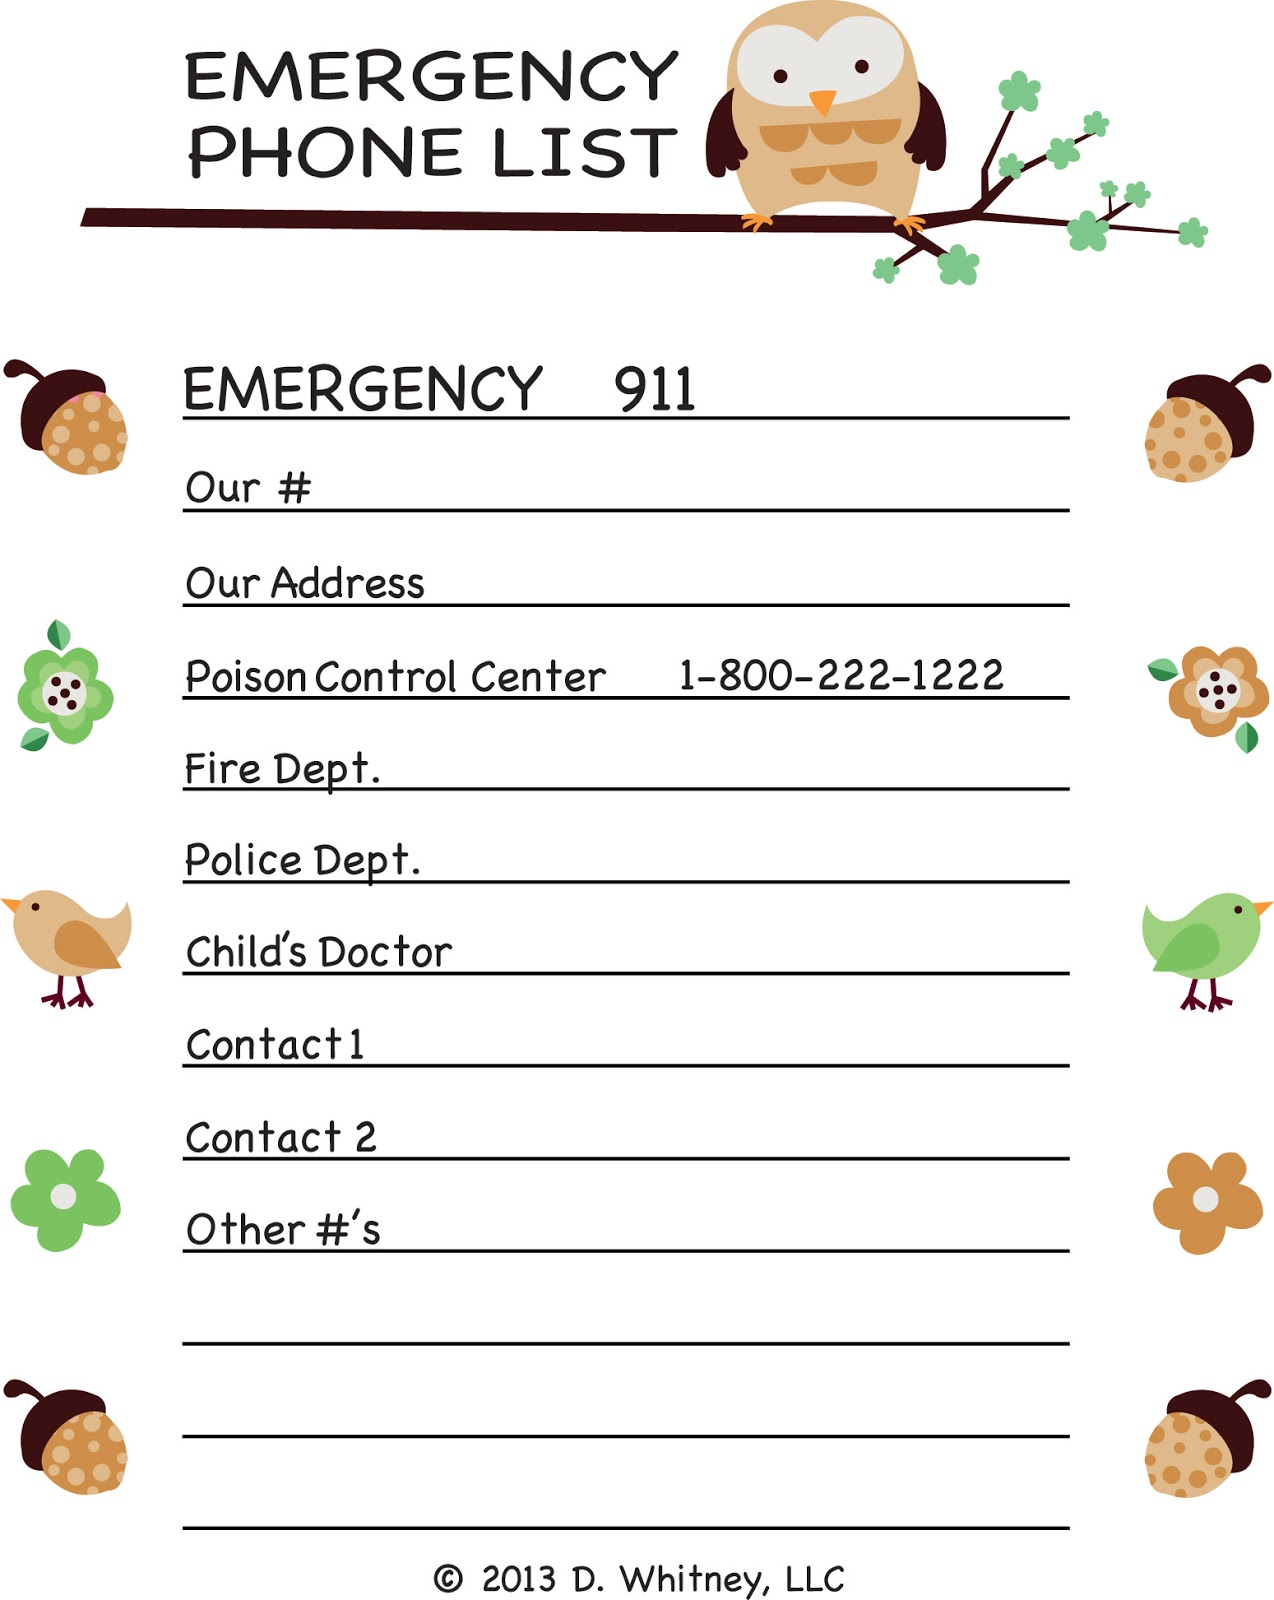 Phone Number List Template invoice template receipt template ...